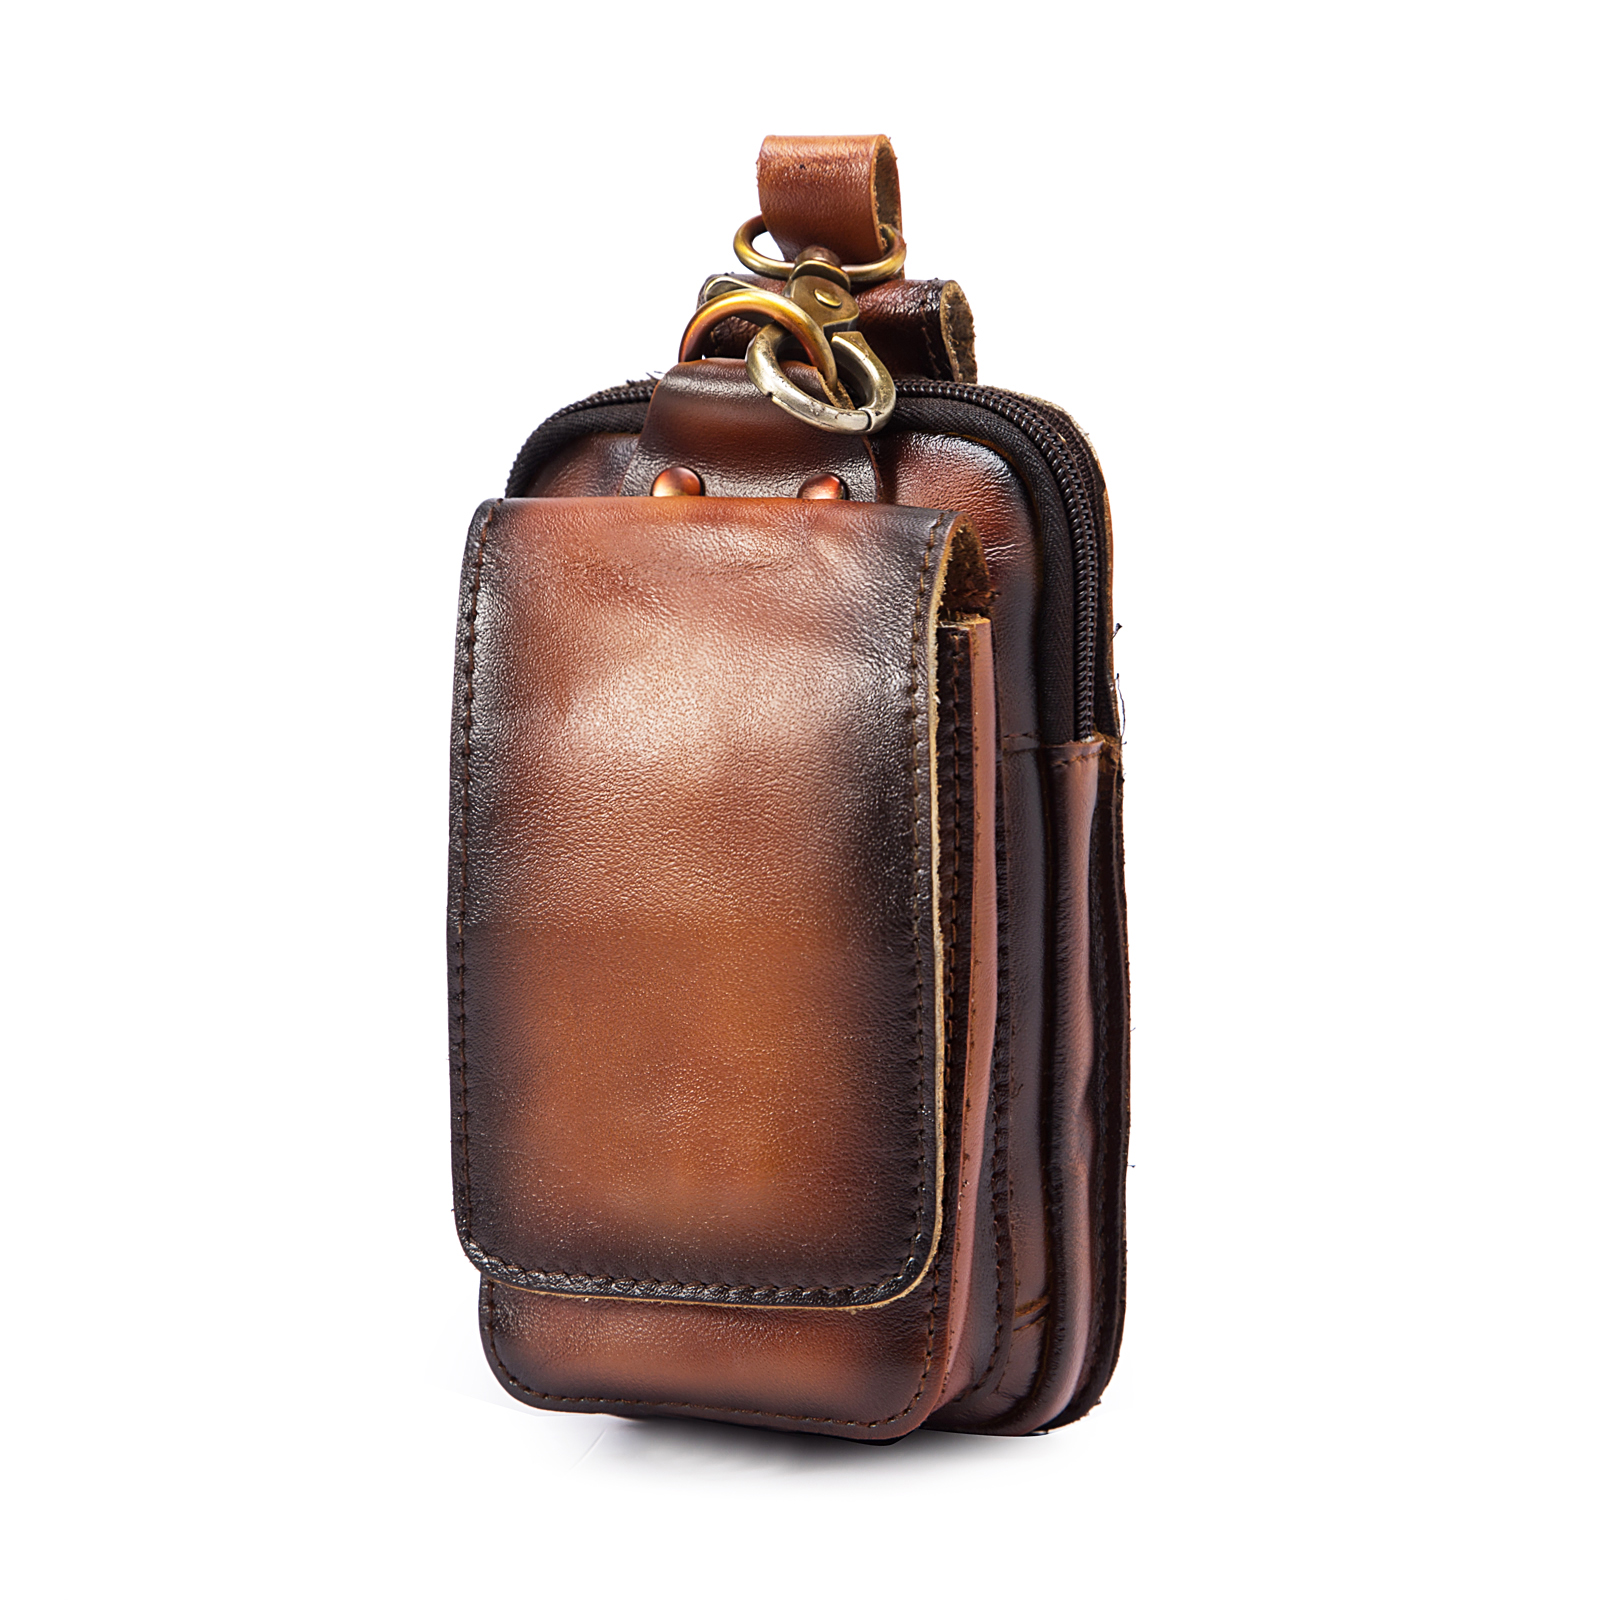 Original Leather Men Casual Design Cowhide Fashion Small Hook Bum Bag Waist Belt Pack Cigarette Case 6